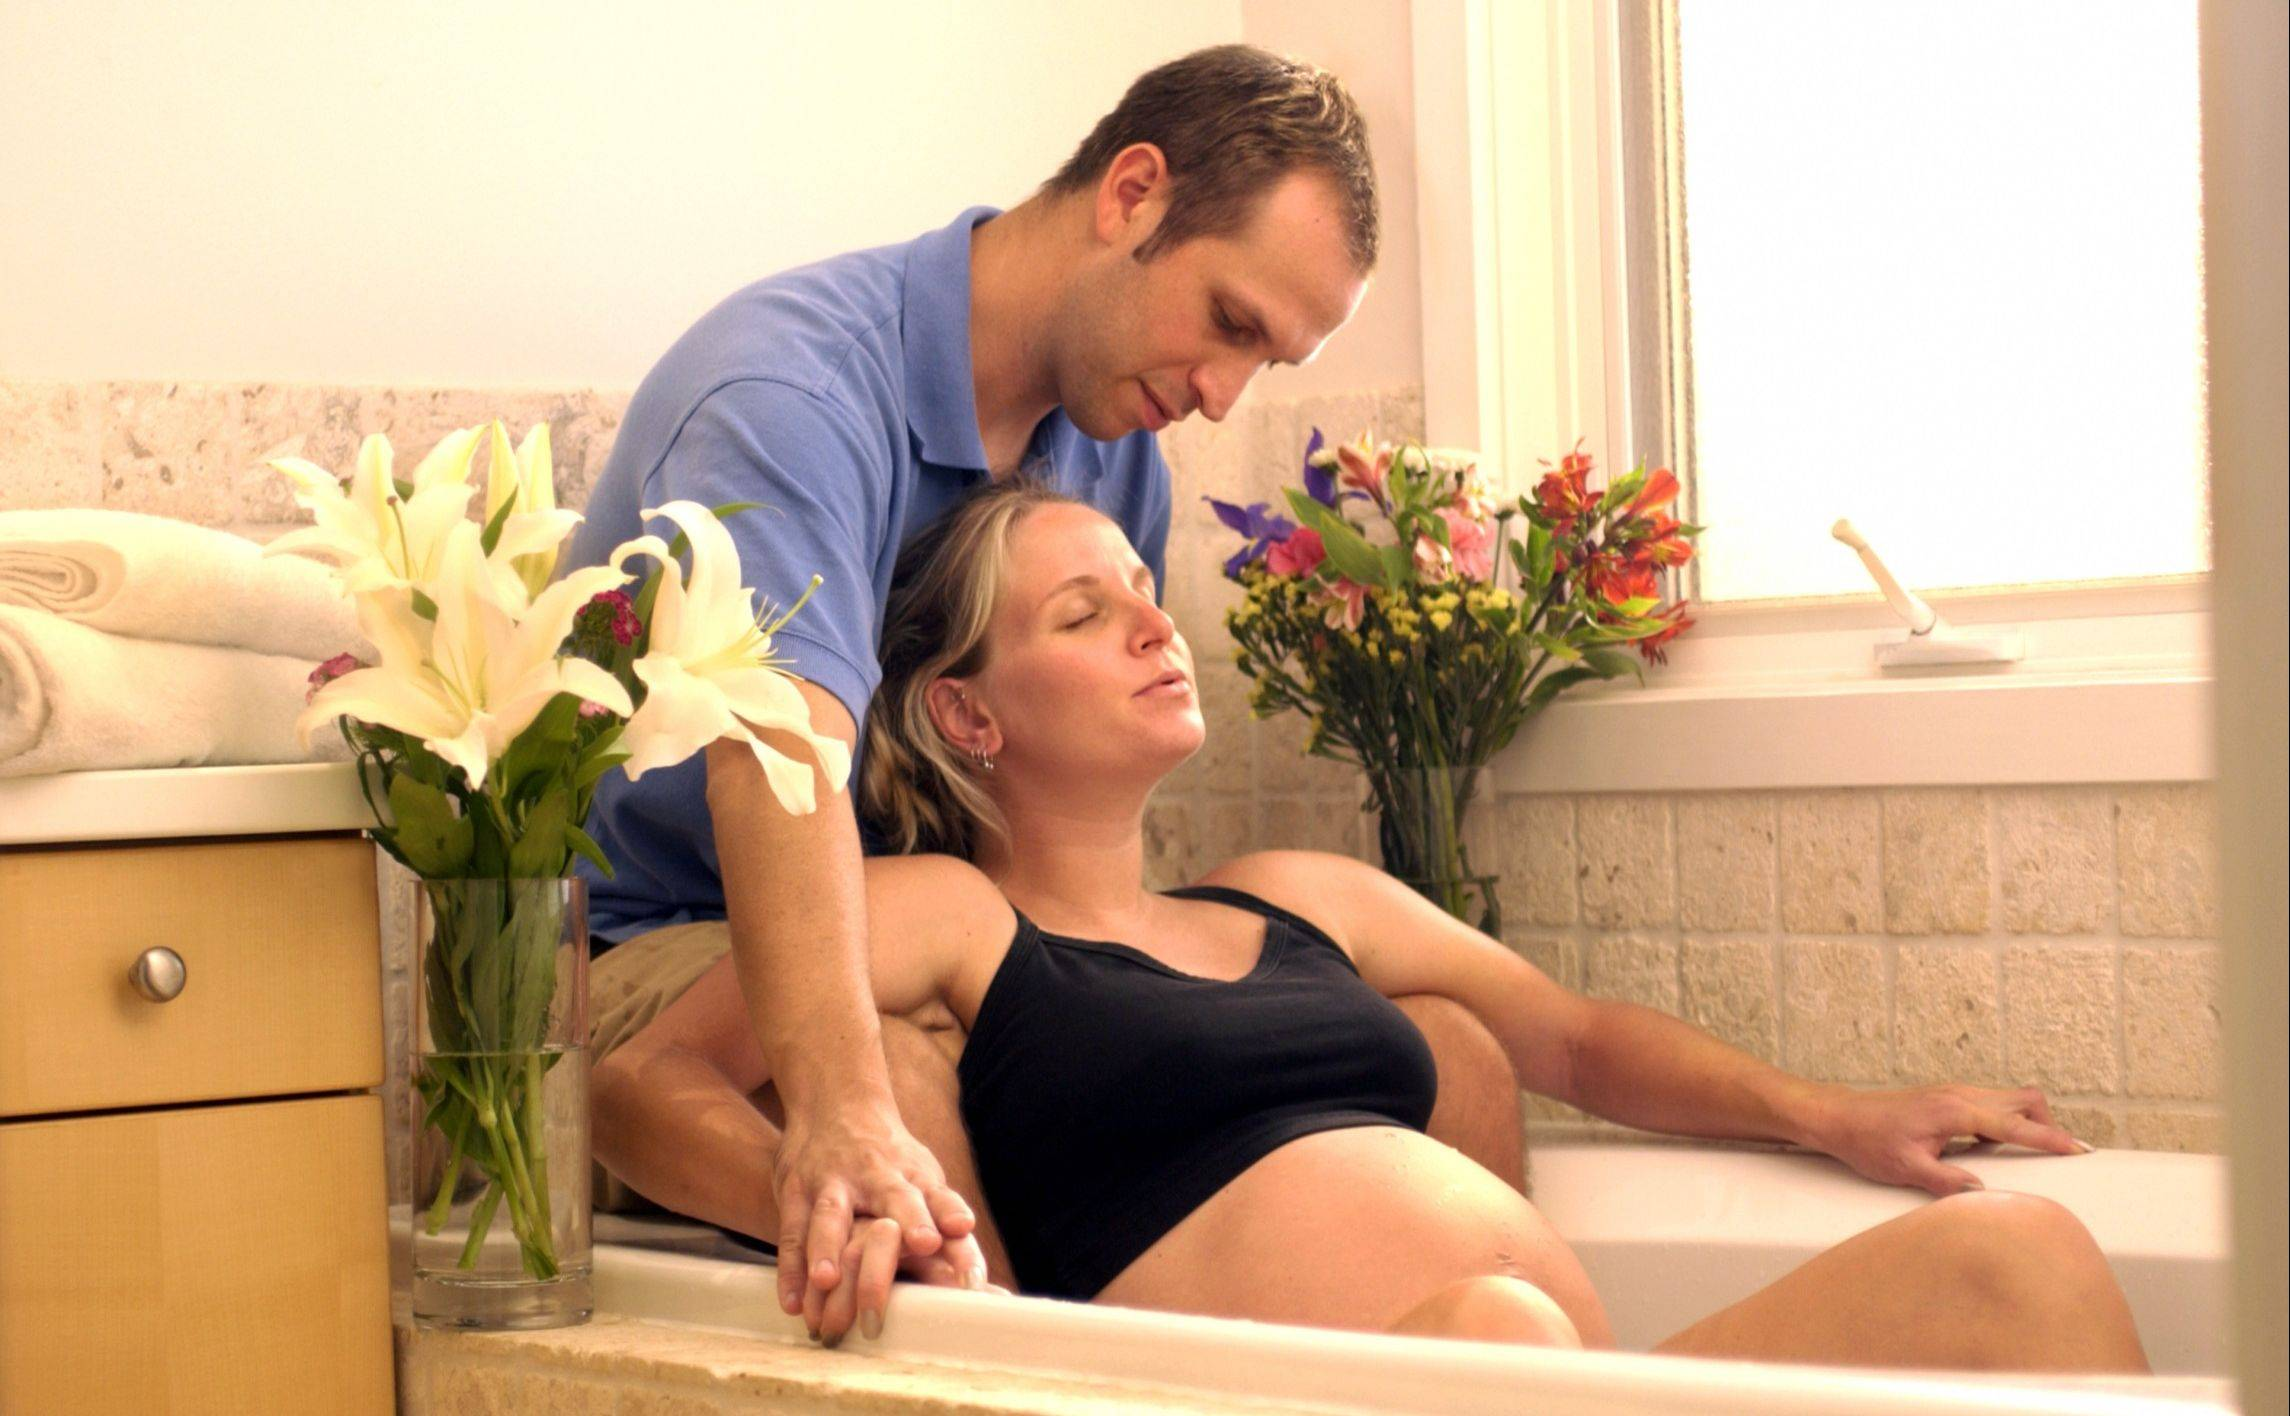 Water births in bathtubs have become a popular delivery option at home.